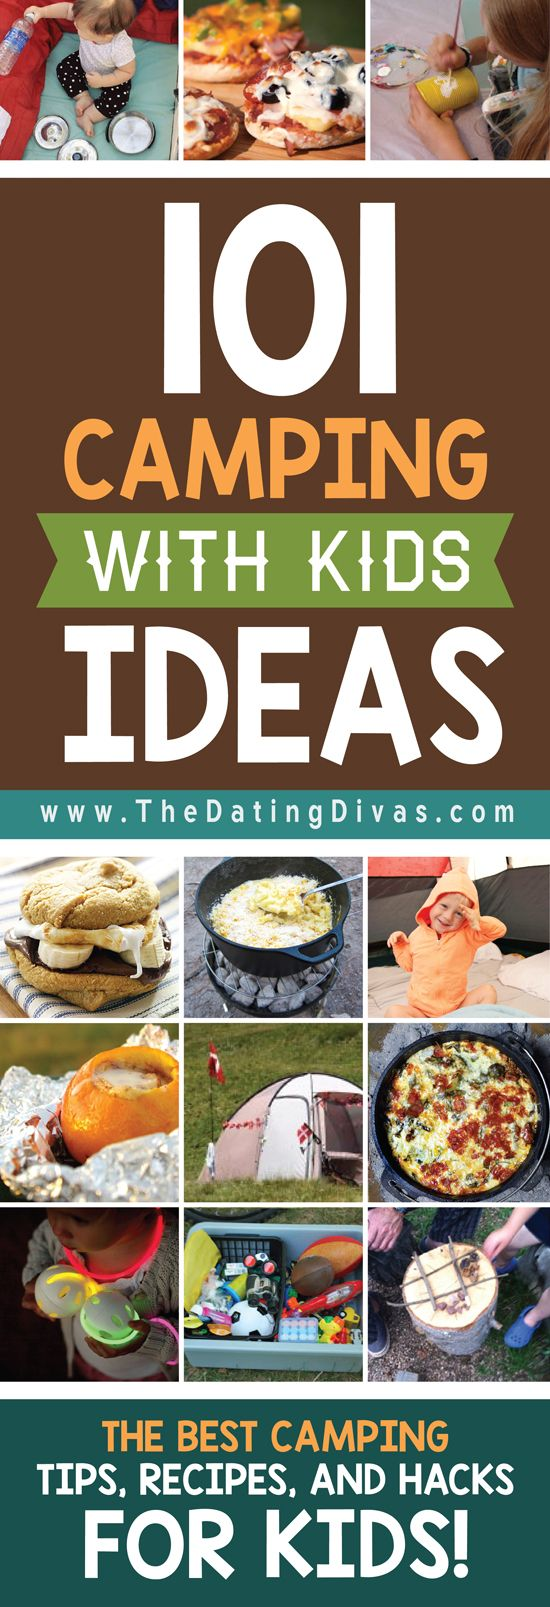 I can't wait to go camping with my family! Yay for summer!! www.TheDatingDivas.com